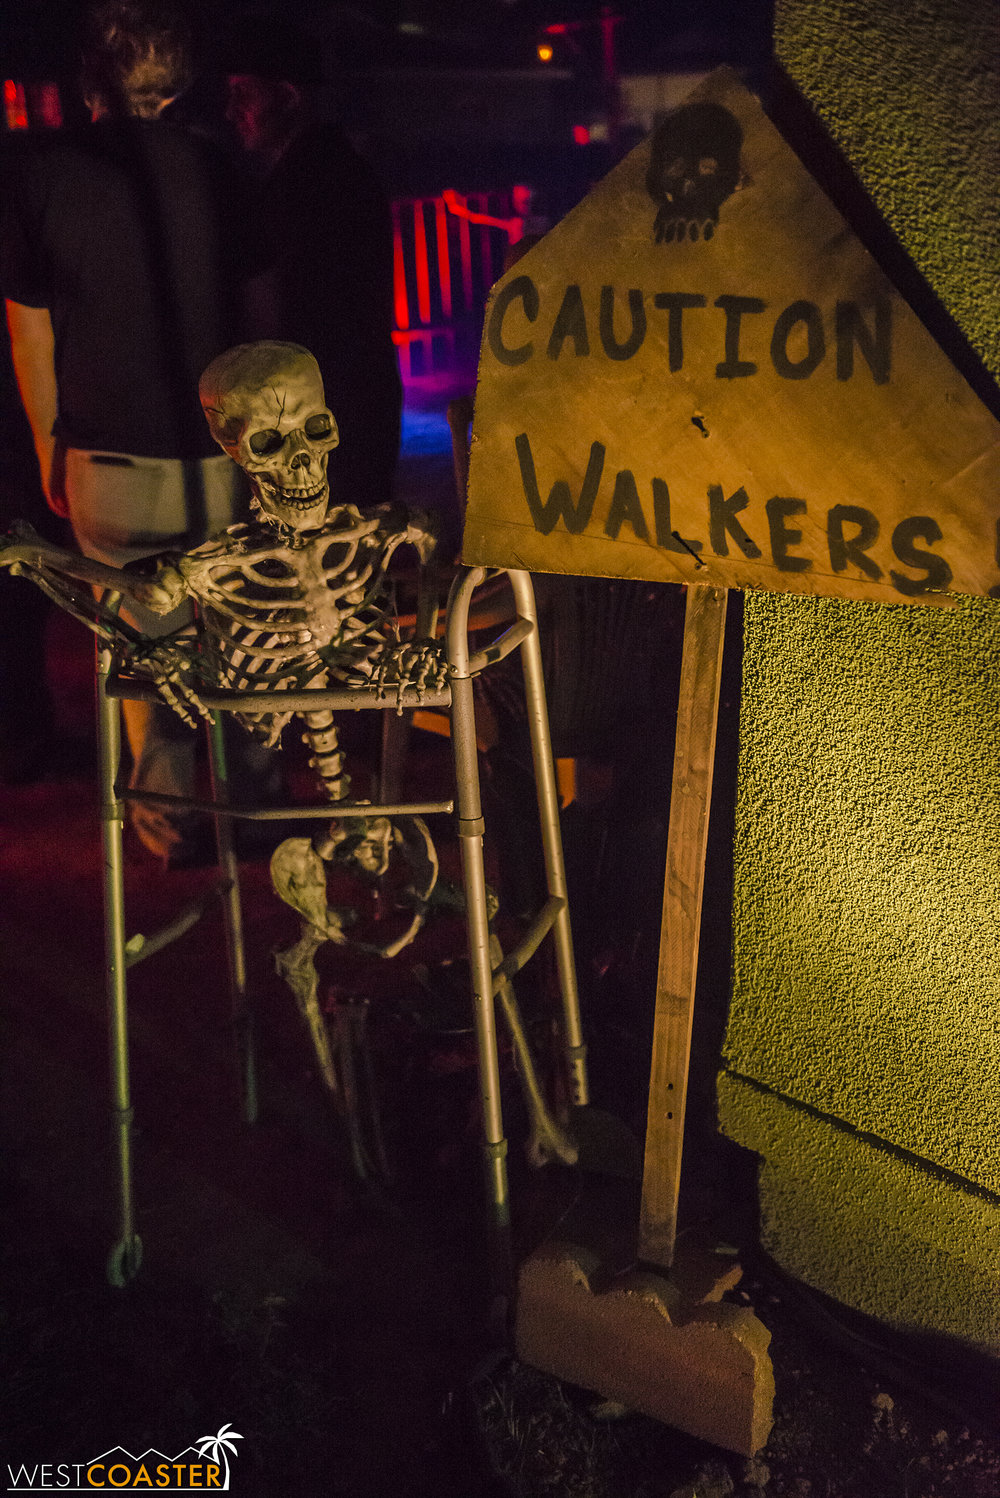 This is probably the best gag I've seen at a home haunt. Punny and silly, but expressive of the vibe of this haunt.